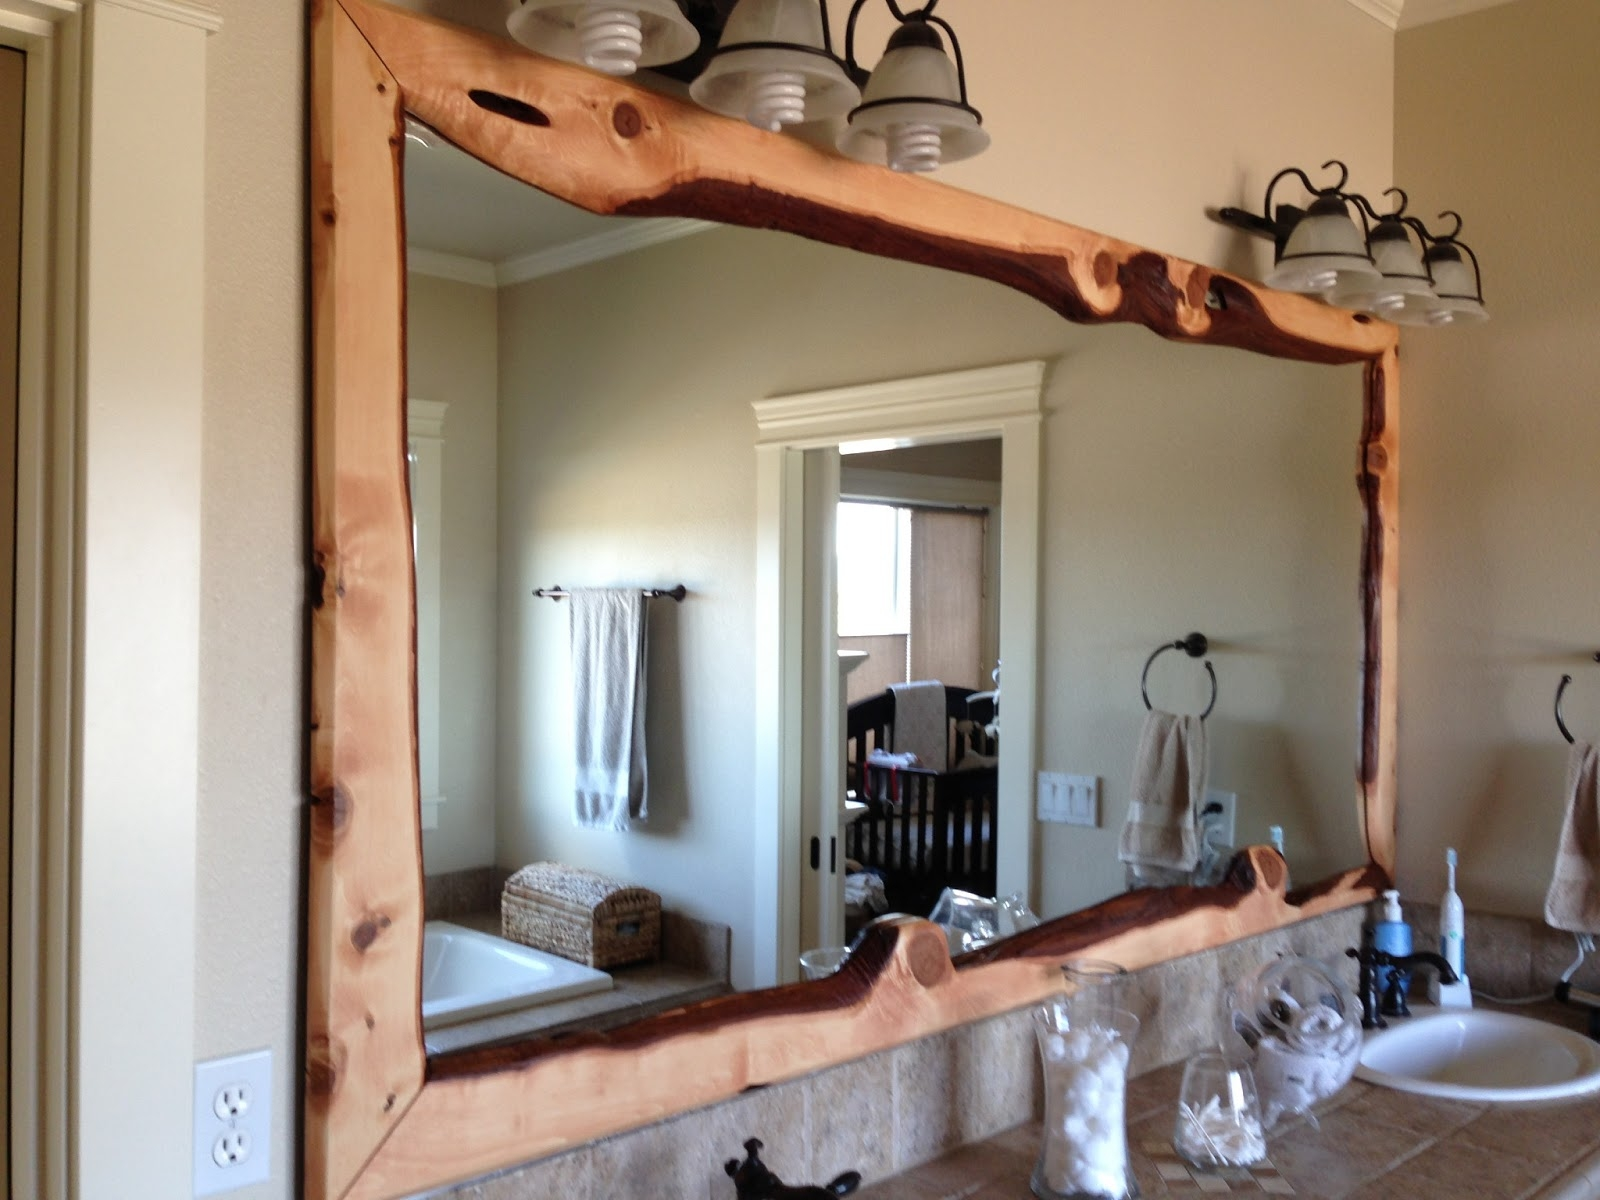 Cherry Wood Framed Wall Mirrors Cherry Wood Framed Wall Mirrors wall ideas enchanting rustic wood framed wall mirrors full image 1600 X 1200